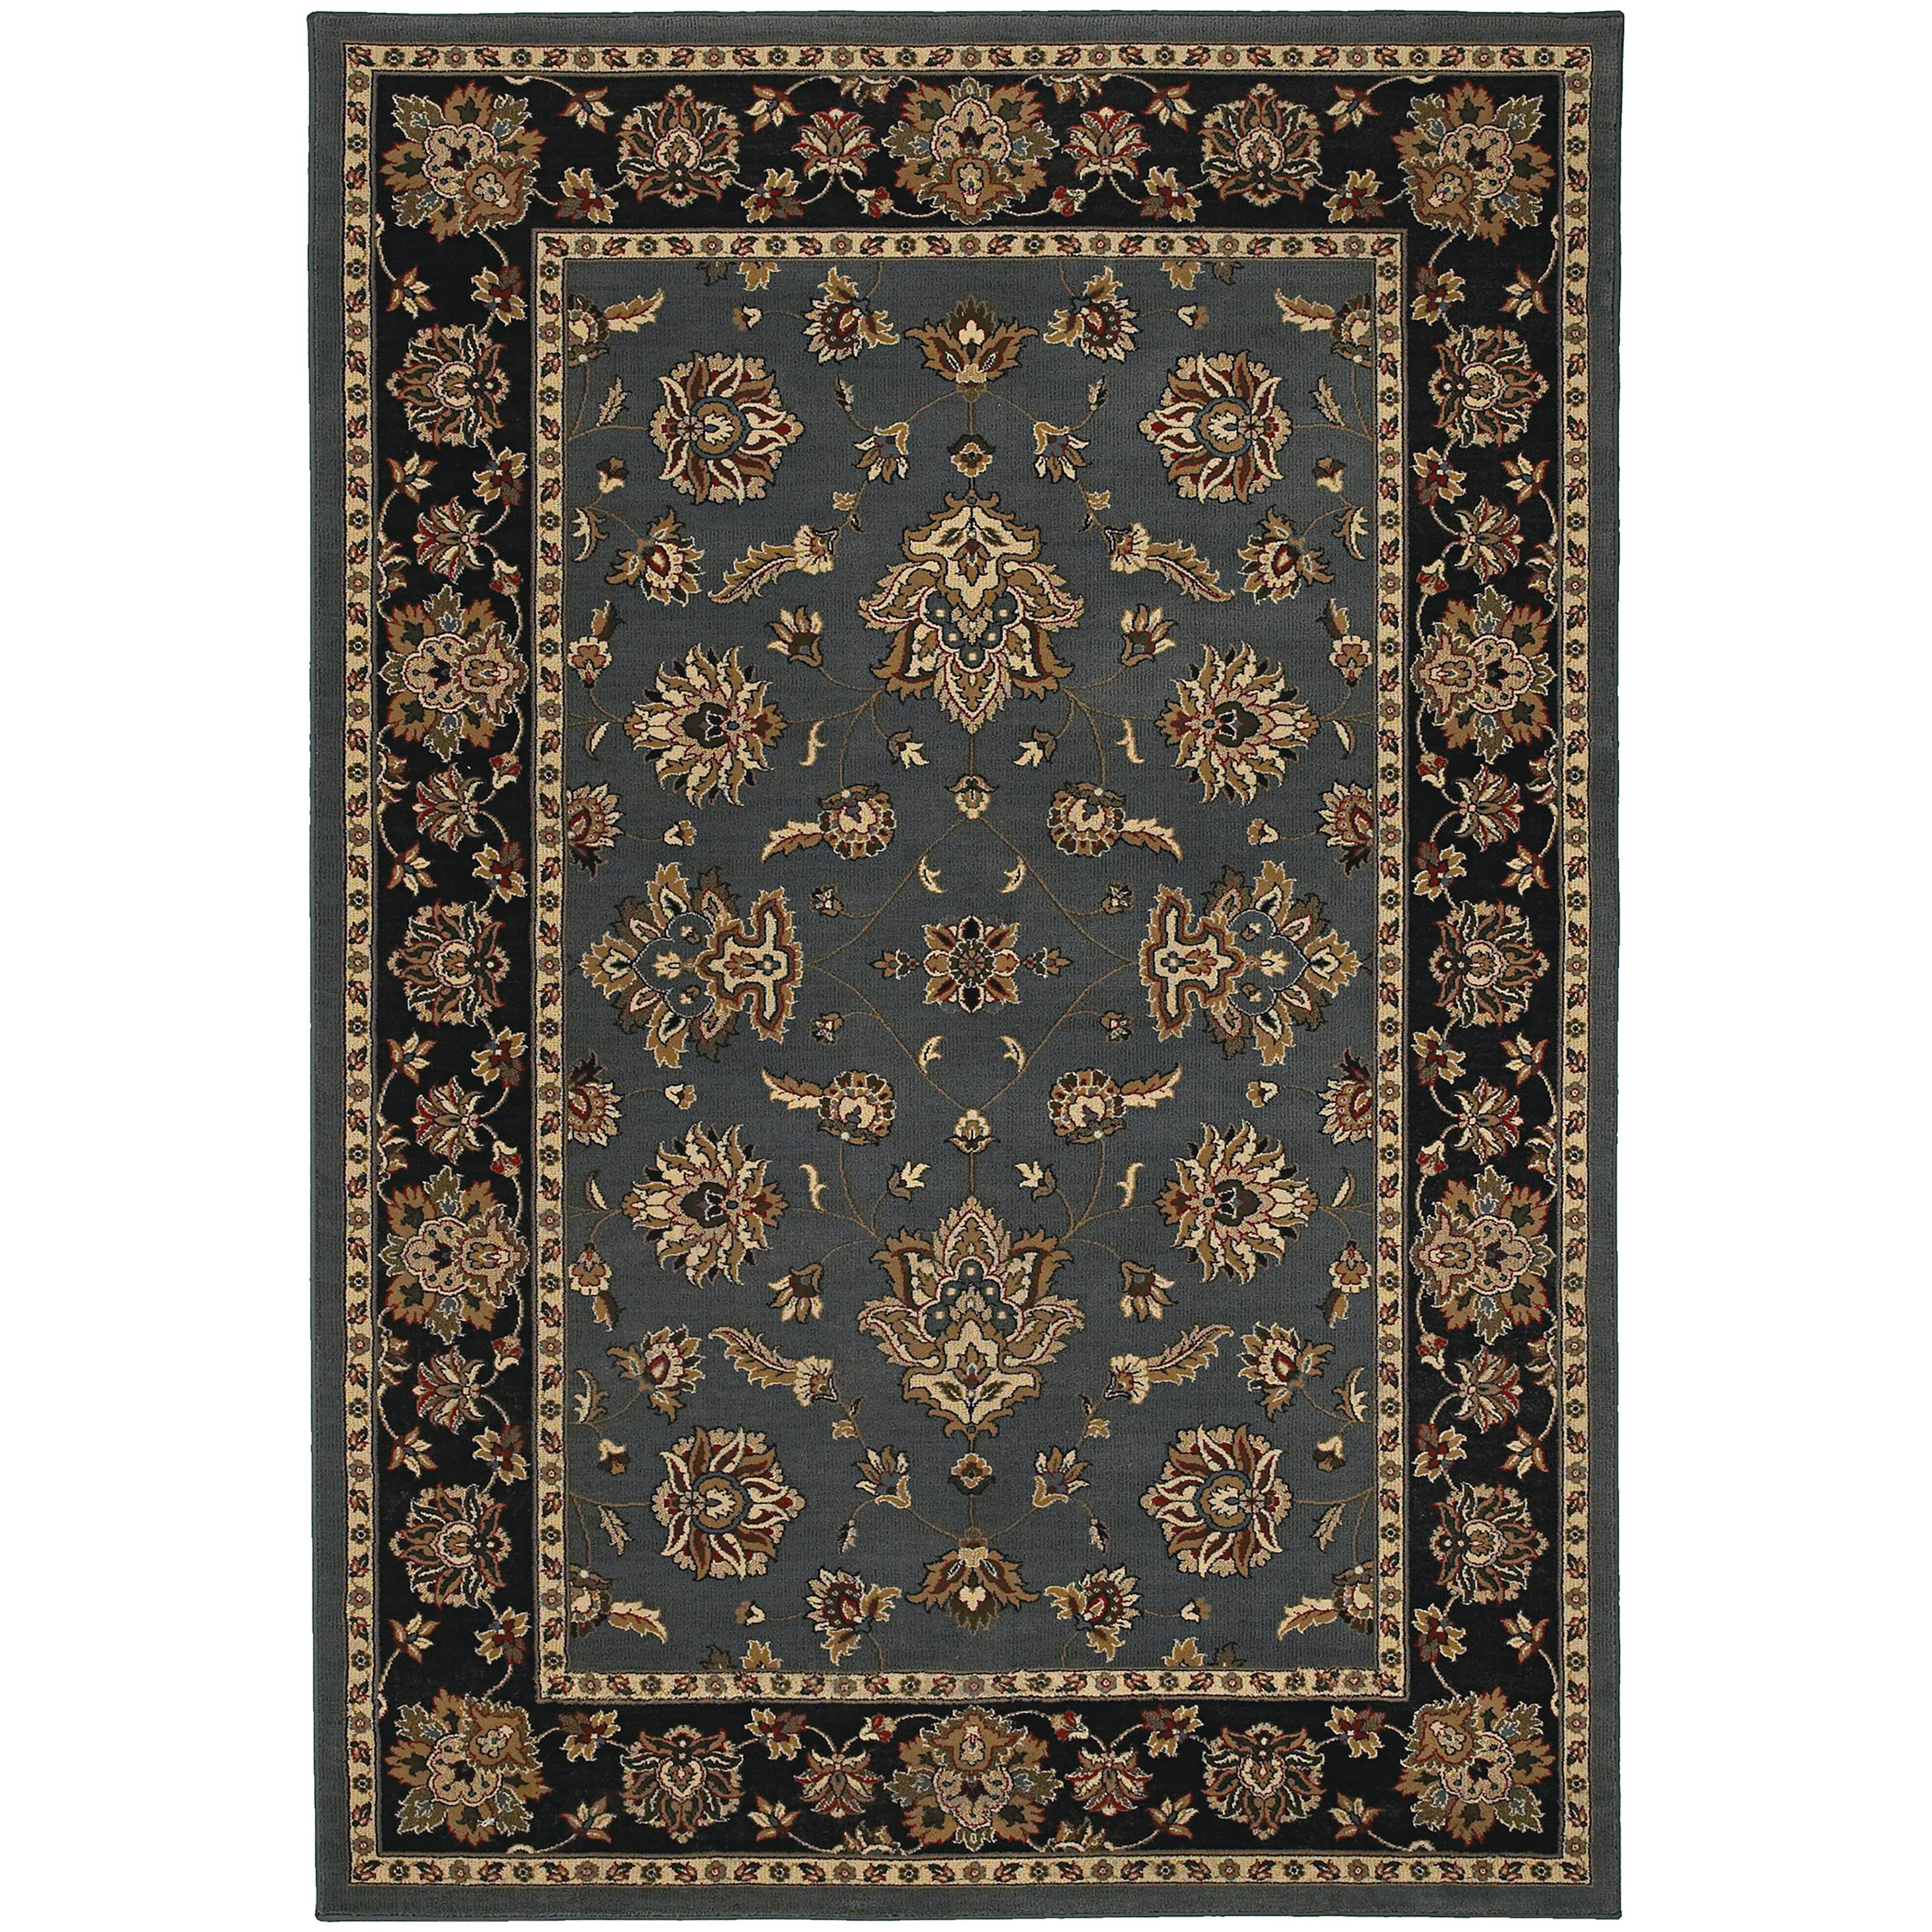 Oriental Weavers Ariana 12' X 15' Rug - Item Number: A623H3360450ST